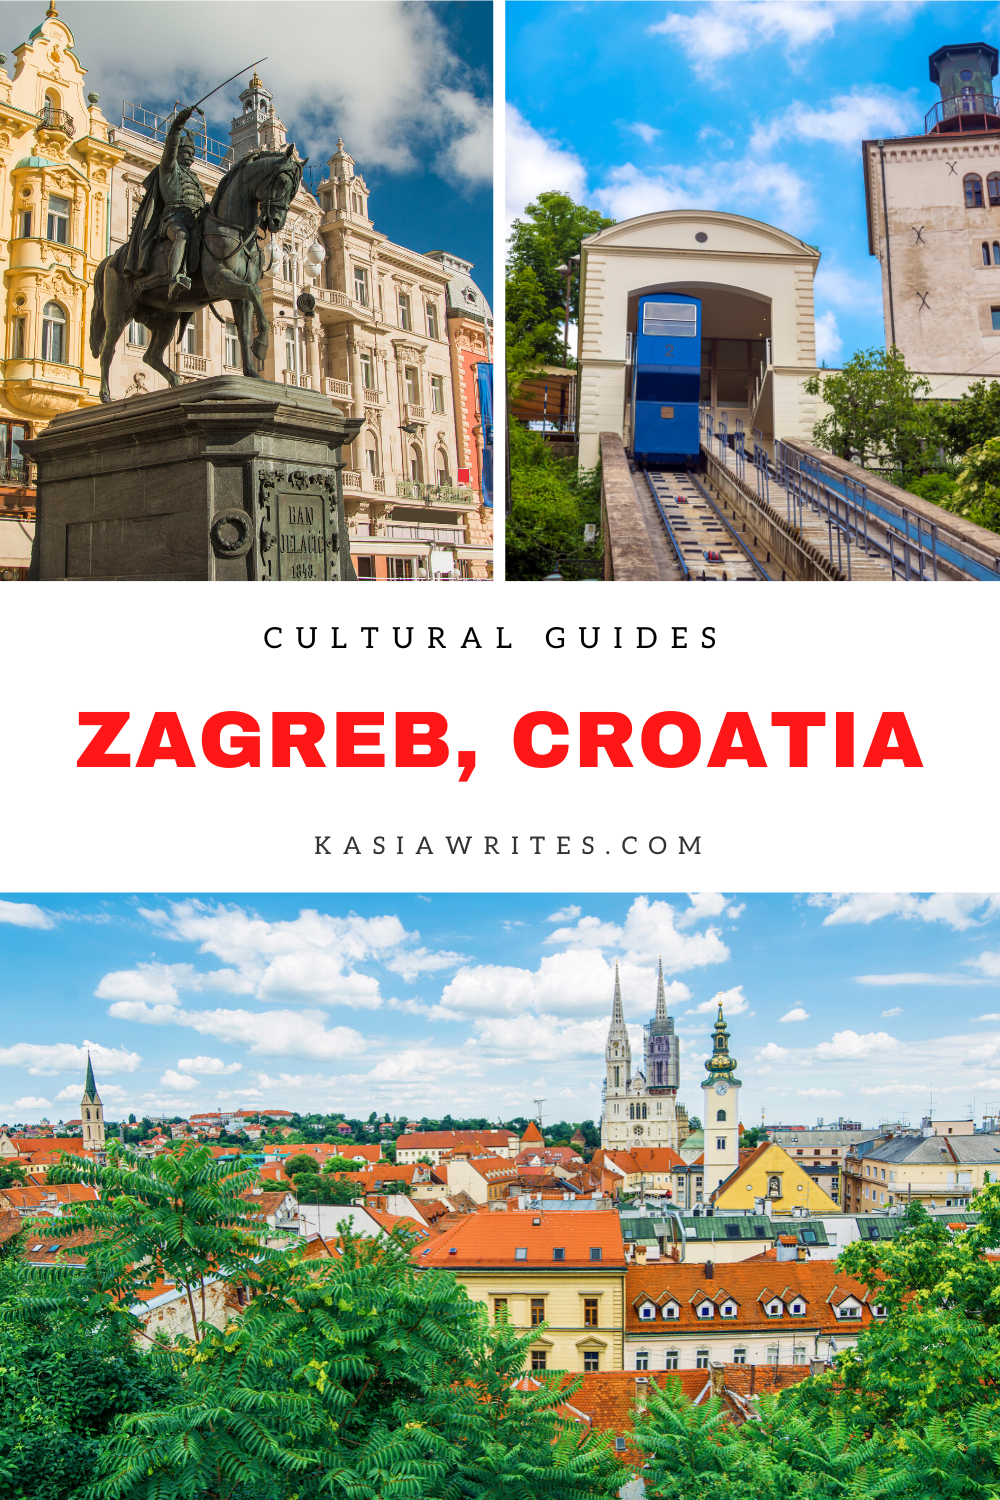 Things To Do In Zagreb Croatia You Didn T Know You Were Missing Out On In 2020 Croatia Culture Travel Zagreb Croatia